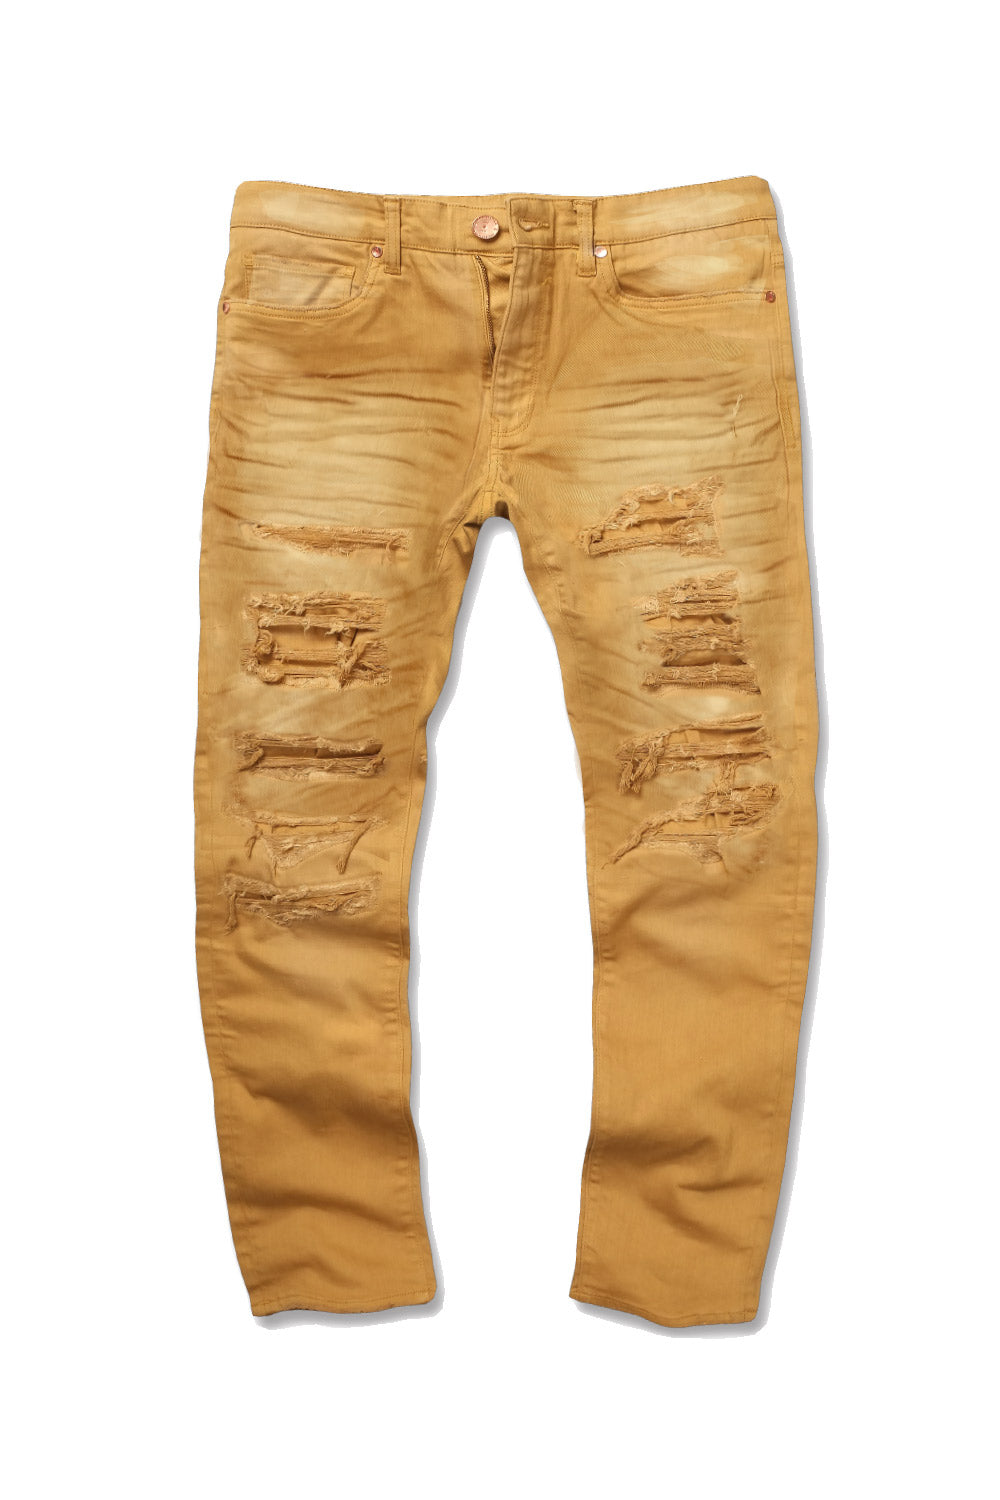 Jordan Craig - Kids - Memphis Twill Pants (Summer Wheat)